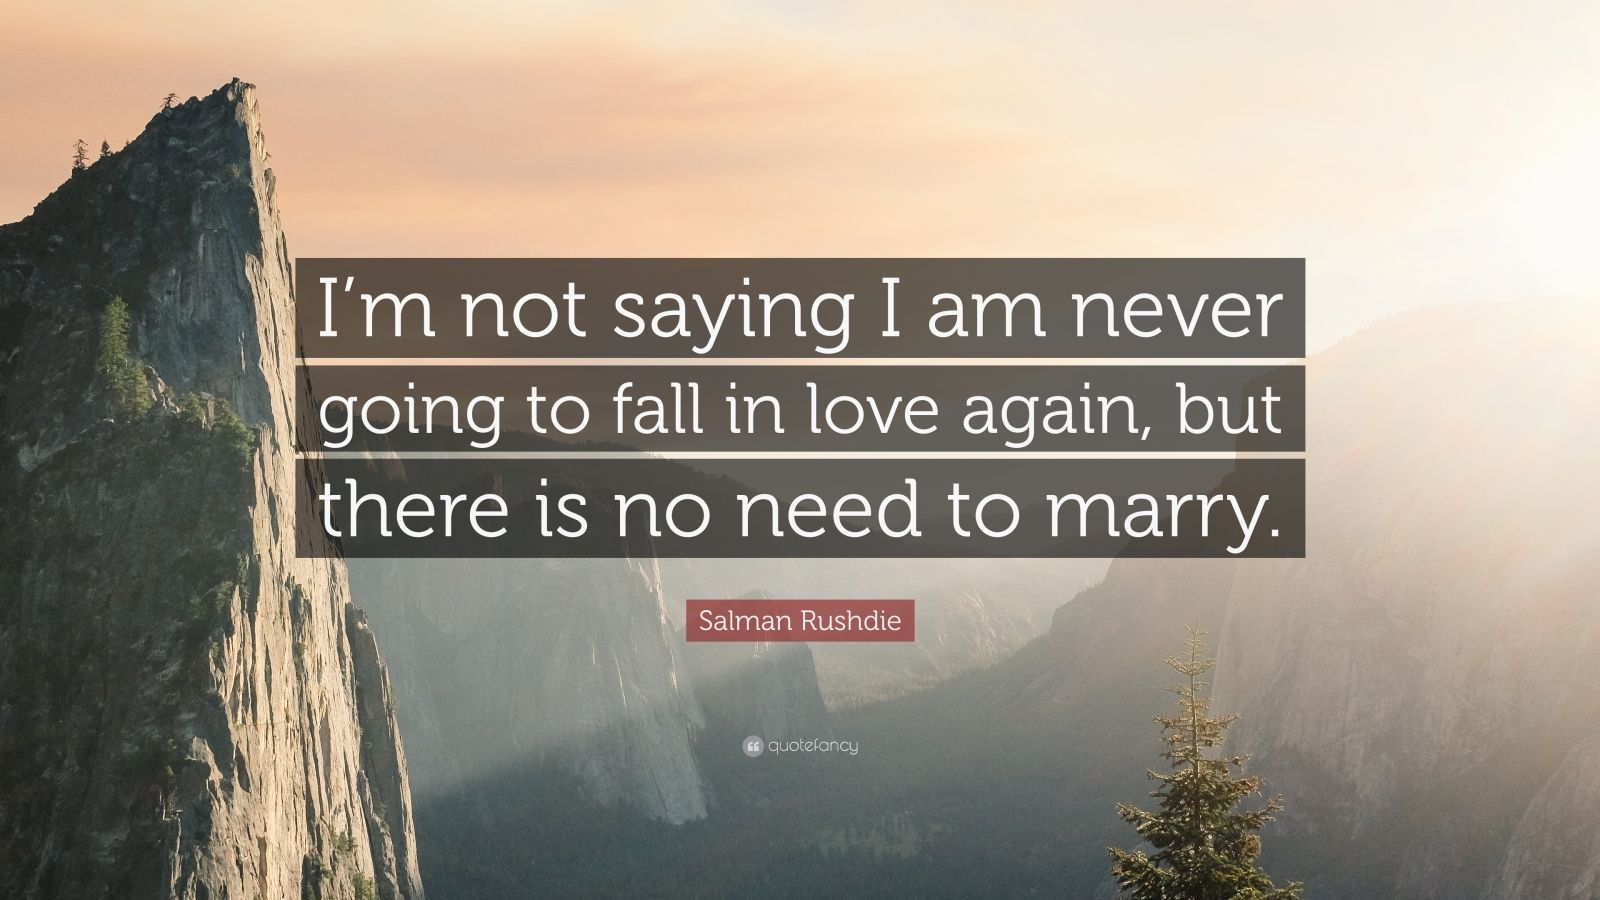 """Salman Rushdie Quote: """"I'm not saying I am never going to fall in love again, but there is no need to marry."""""""